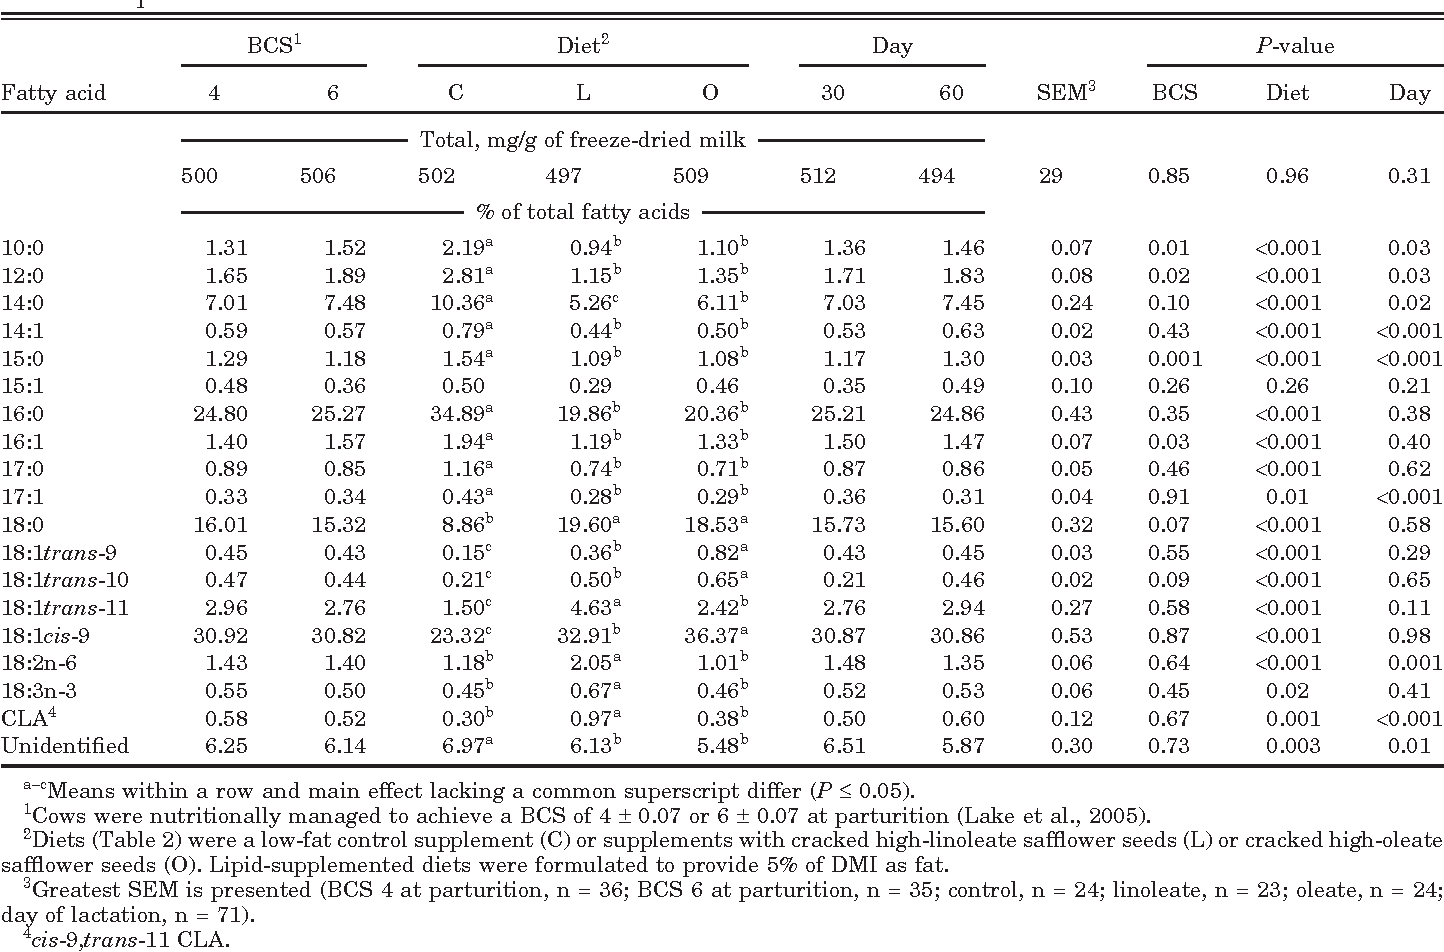 Table 7. Main effects of BCS at parturition, dietary treatment, and day of lactation on milk fatty acid profile of beef cows in Exp. 2